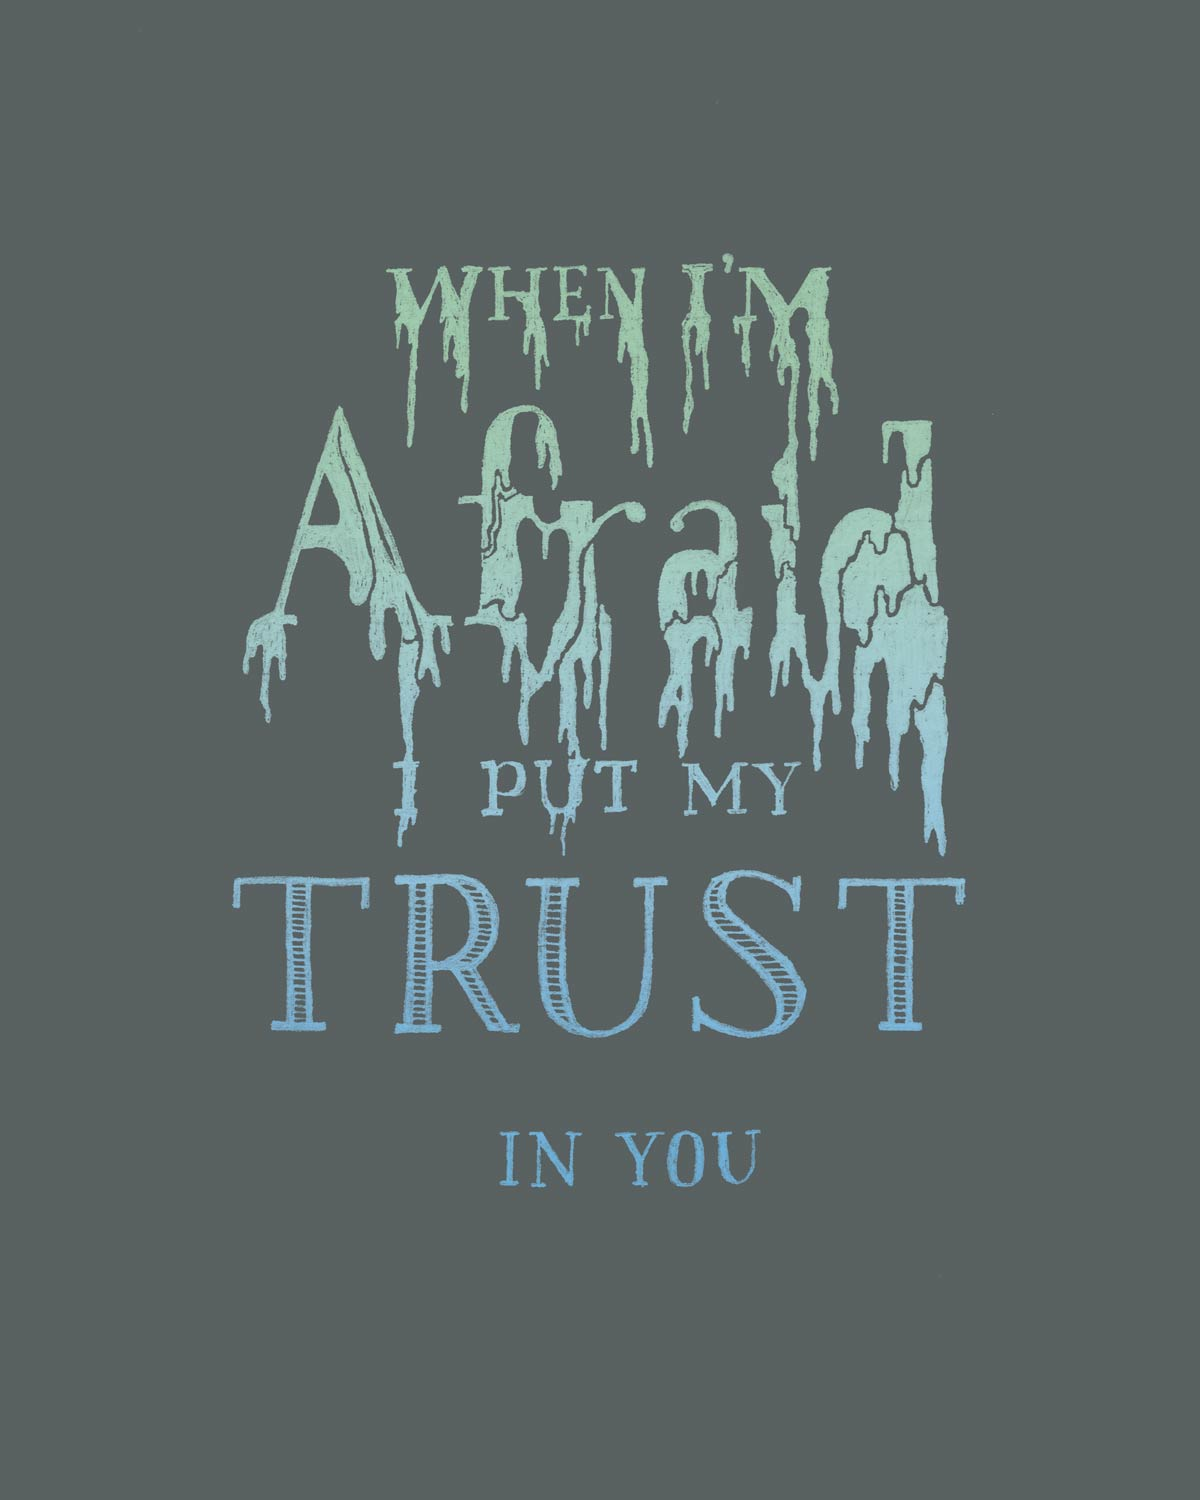 Lettering that looks like it's melting with fear; text reads When I'm afraid I put my trust in you